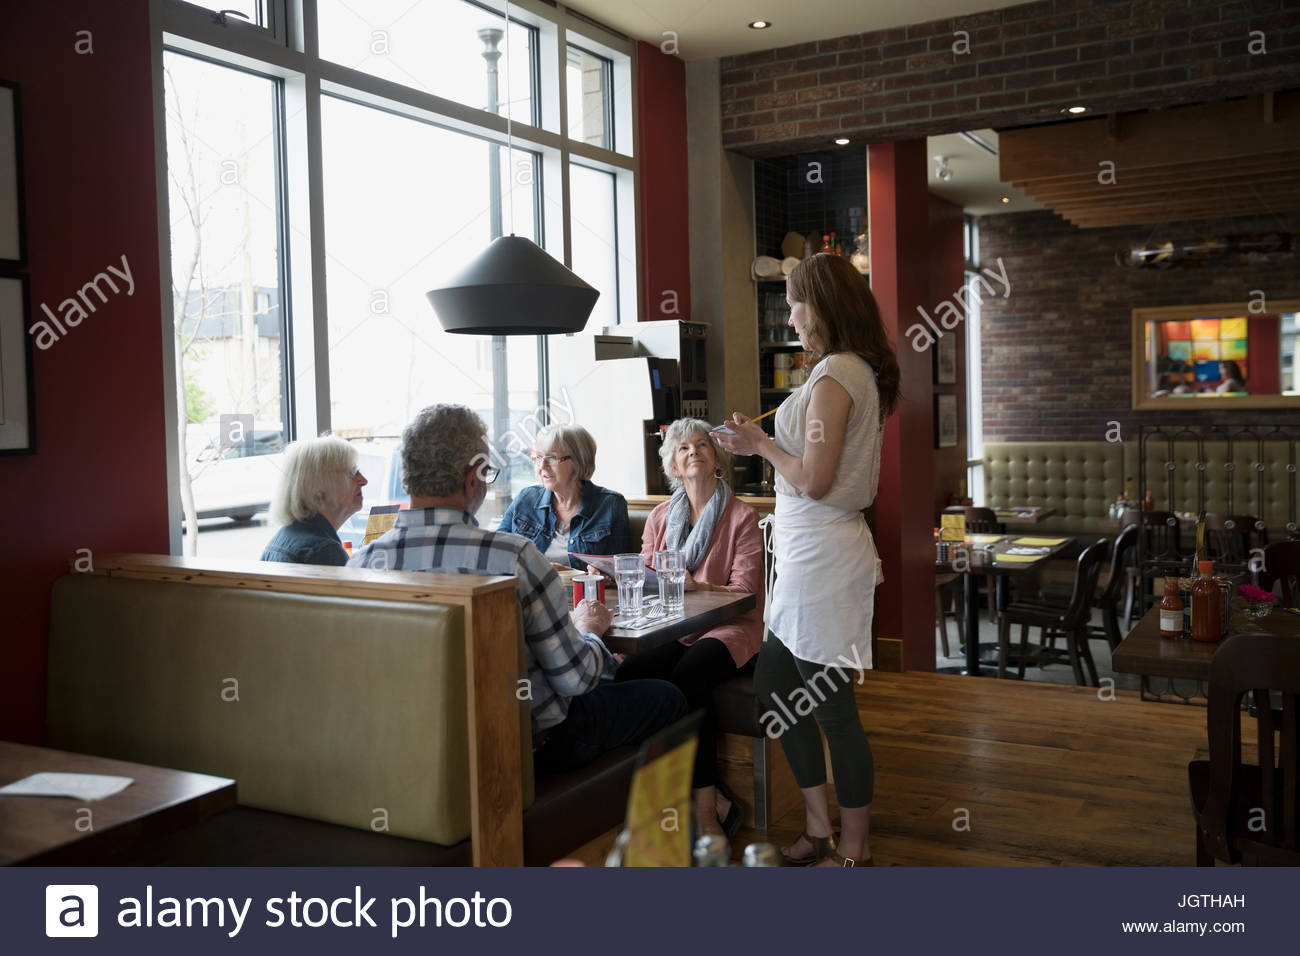 Waitress de senior friends dining in diner booth Photo Stock